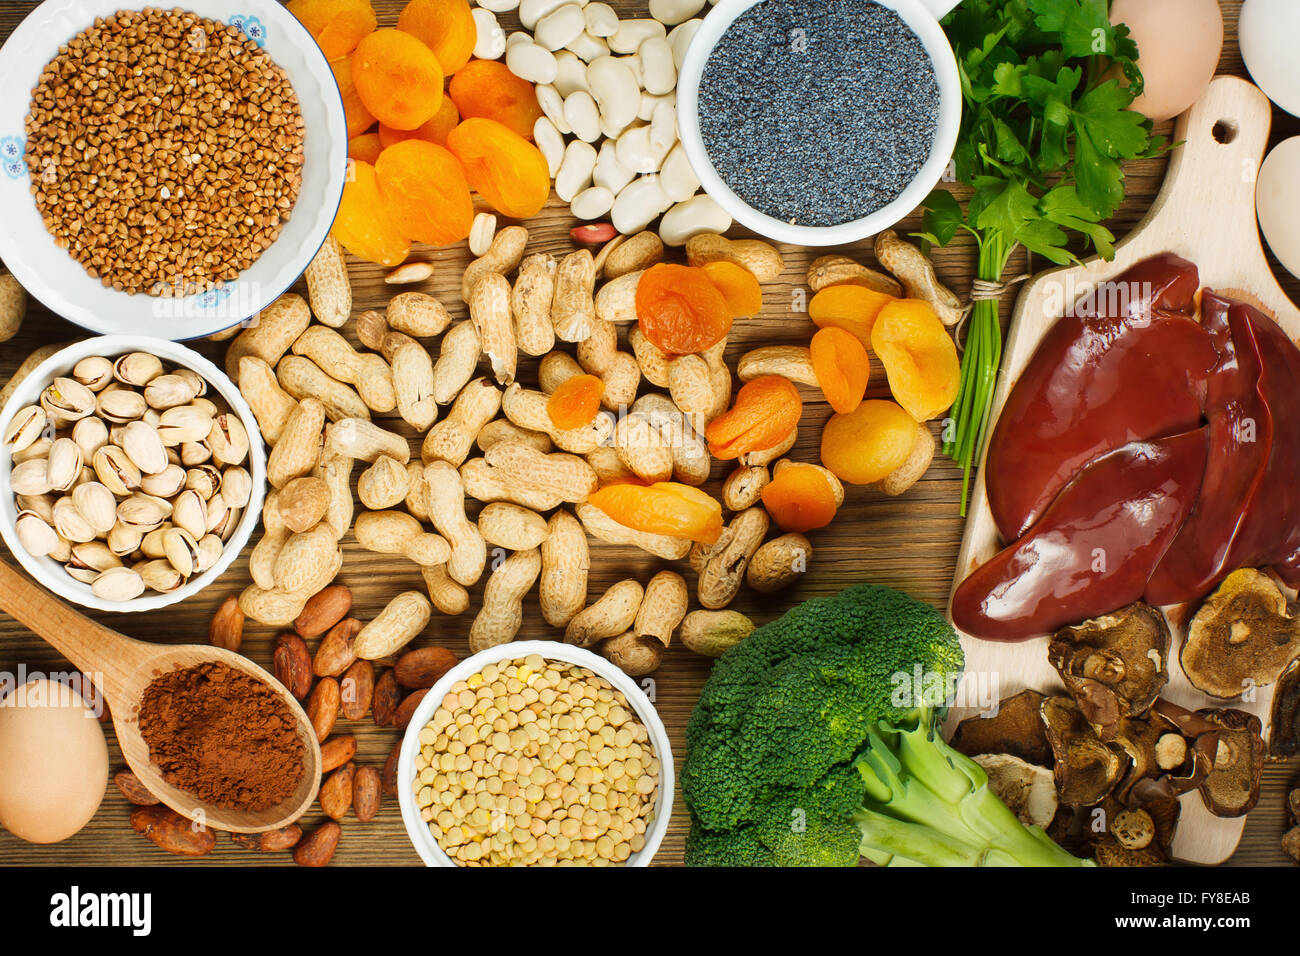 Collection iron rich foods - Stock Image